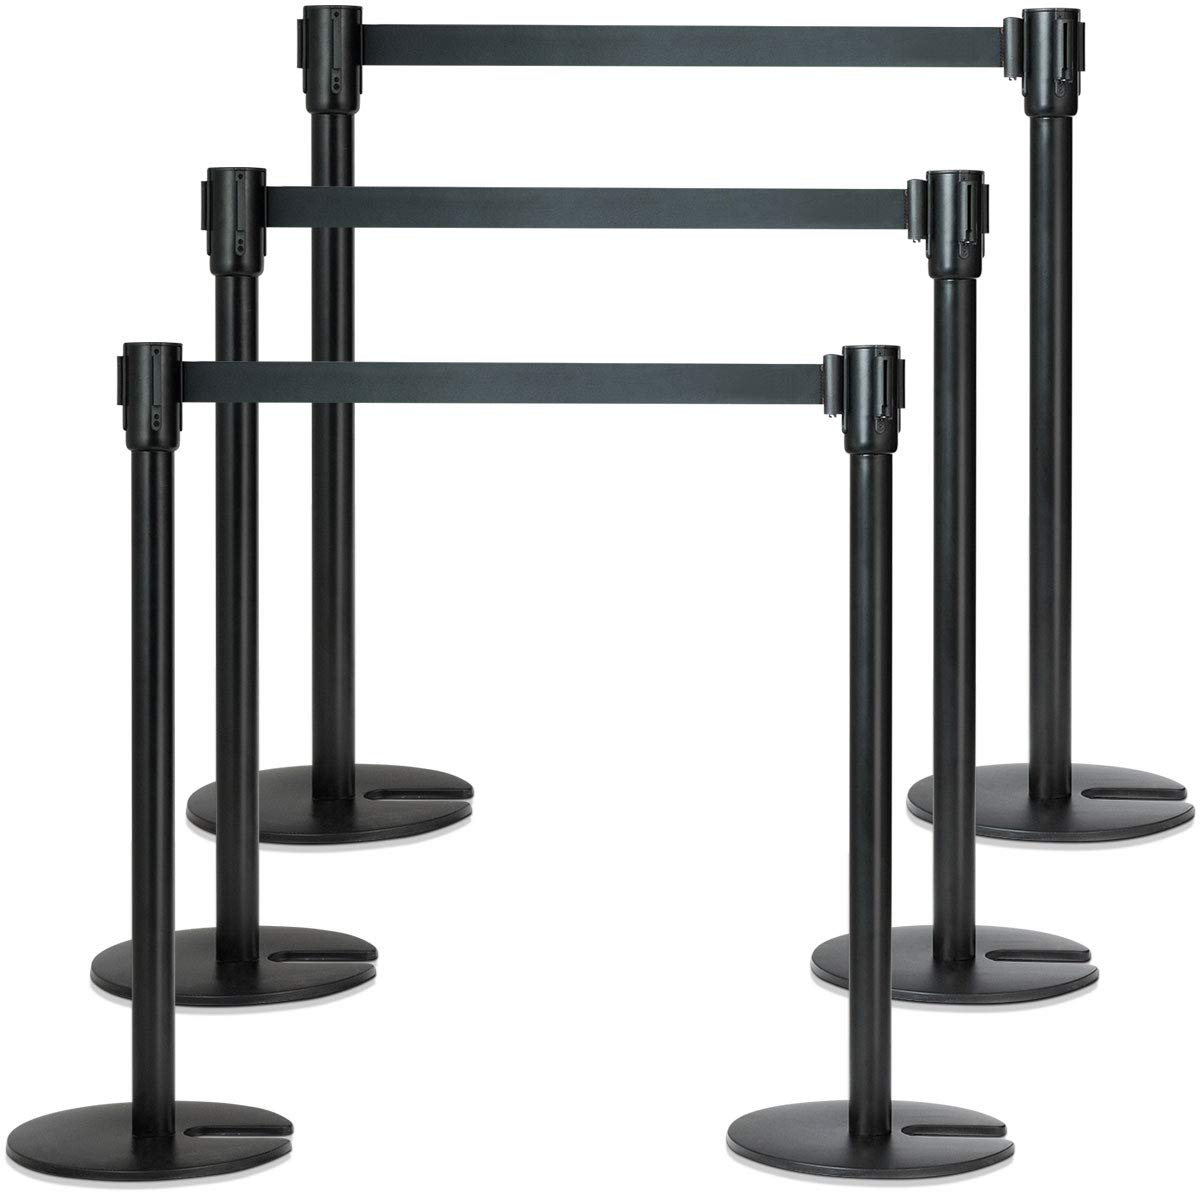 Goplus 6Pcs Stanchion Post Crowd Control Barrier Stainless Steel Stanchions with 3 Retractable Belt Posts Queue Pole, 37'' Height (Black)